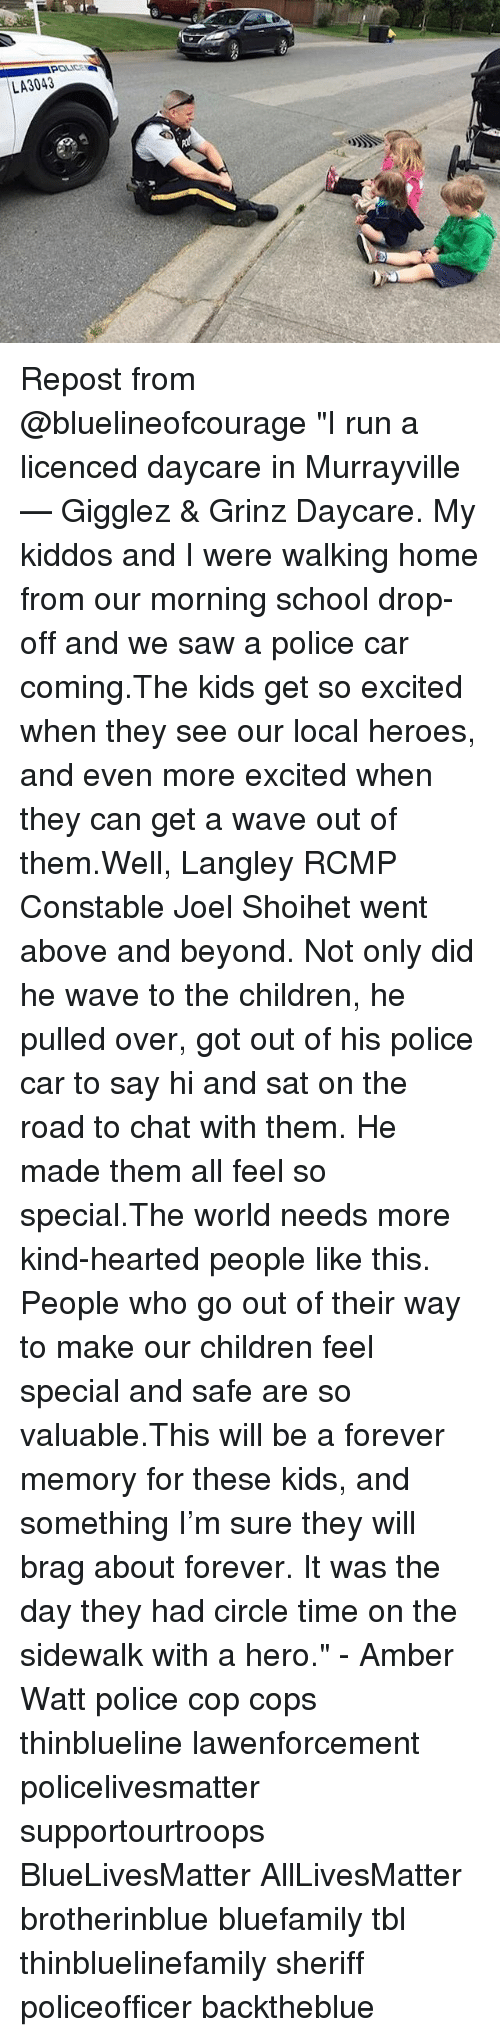 "All Lives Matter, Children, and Memes: LA3043 Repost from @bluelineofcourage ""I run a licenced daycare in Murrayville — Gigglez & Grinz Daycare. My kiddos and I were walking home from our morning school drop-off and we saw a police car coming.The kids get so excited when they see our local heroes, and even more excited when they can get a wave out of them.Well, Langley RCMP Constable Joel Shoihet went above and beyond. Not only did he wave to the children, he pulled over, got out of his police car to say hi and sat on the road to chat with them. He made them all feel so special.The world needs more kind-hearted people like this. People who go out of their way to make our children feel special and safe are so valuable.This will be a forever memory for these kids, and something I'm sure they will brag about forever. It was the day they had circle time on the sidewalk with a hero."" - Amber Watt police cop cops thinblueline lawenforcement policelivesmatter supportourtroops BlueLivesMatter AllLivesMatter brotherinblue bluefamily tbl thinbluelinefamily sheriff policeofficer backtheblue"